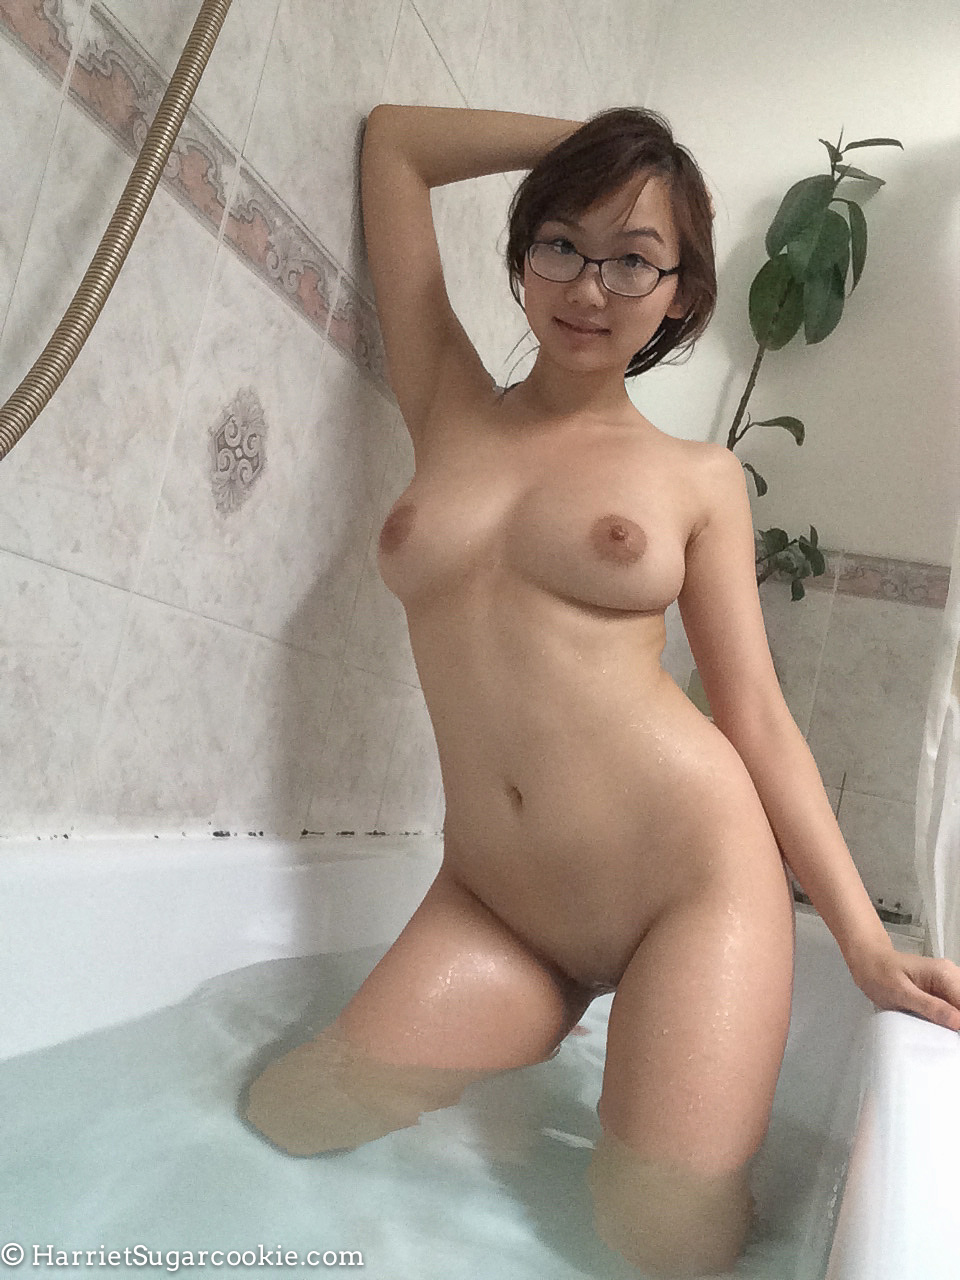 homemade busty women videos,